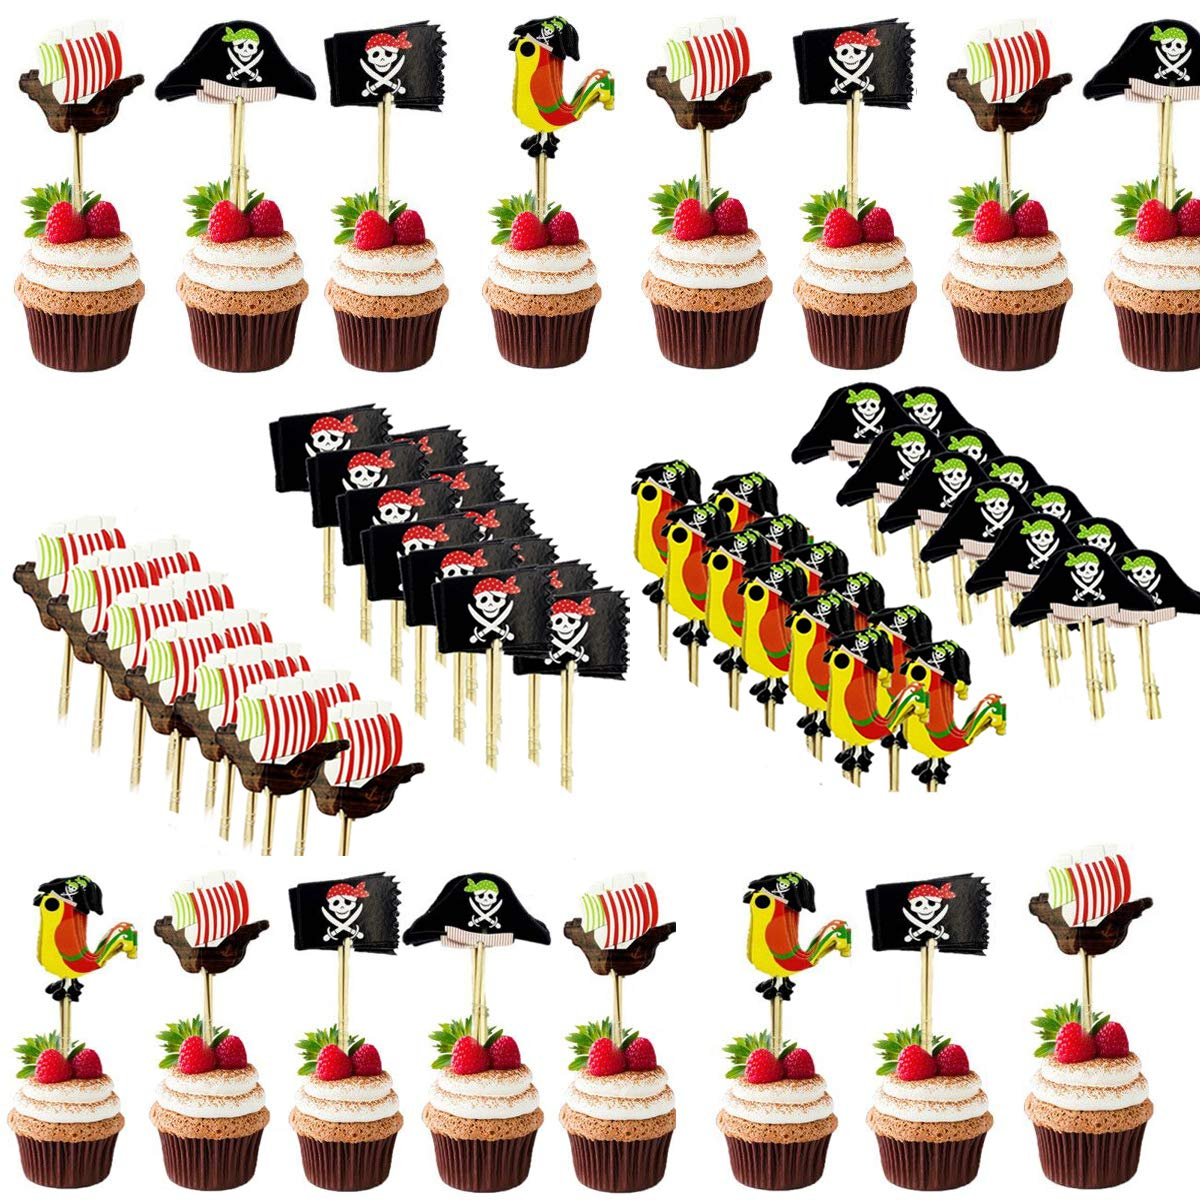 BESTZY 120PCS Cupcake Toppers Pirate Decorations Pirate Toothpicks Food Picks for Boy's Birthday Party Baby Shower Baby First Birthday Party Halloween Decorations